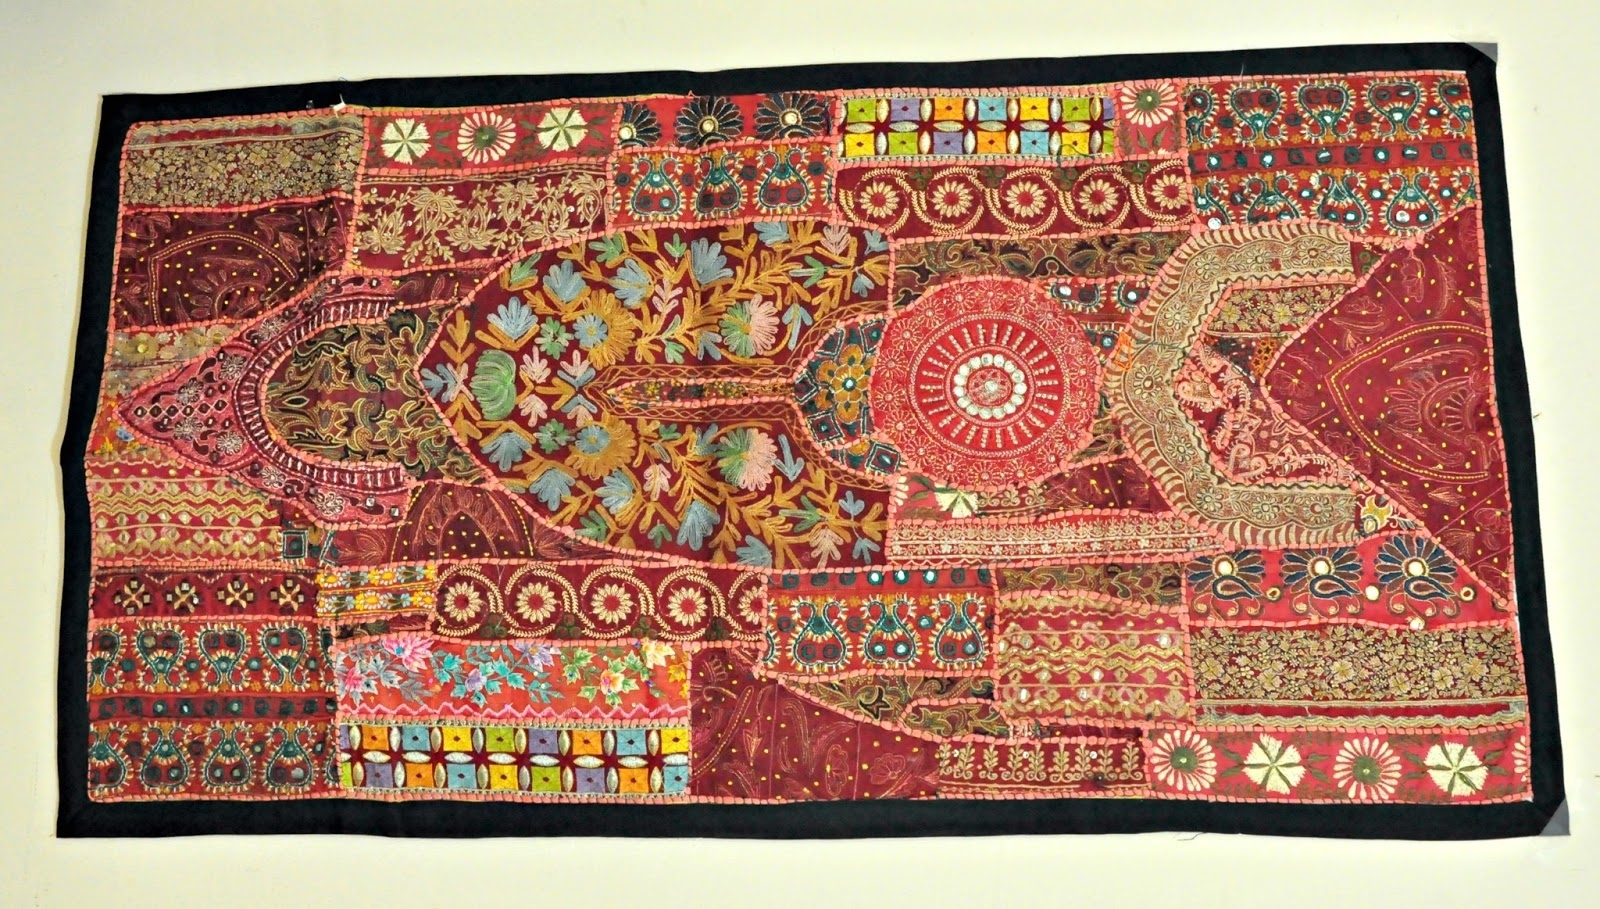 Jaipur Handloom: Indian Vintage Handmade Patchwork Tapestry Wall Regarding Latest Vintage Textile Wall Art (View 7 of 15)